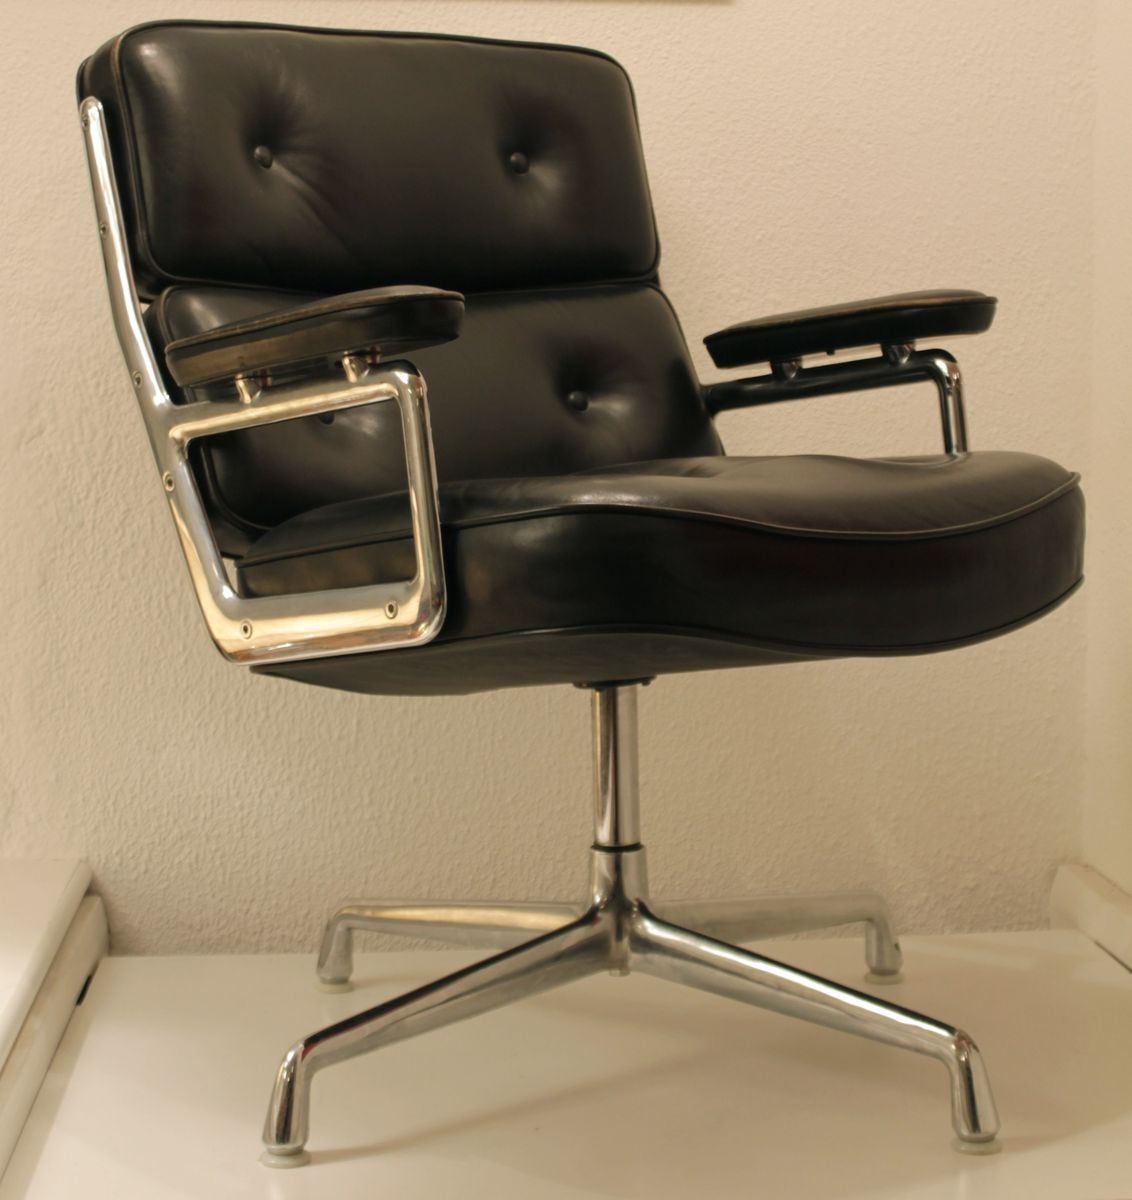 Lobby chair by charles ray eames for vitra 1980s en for Vitra eames prix